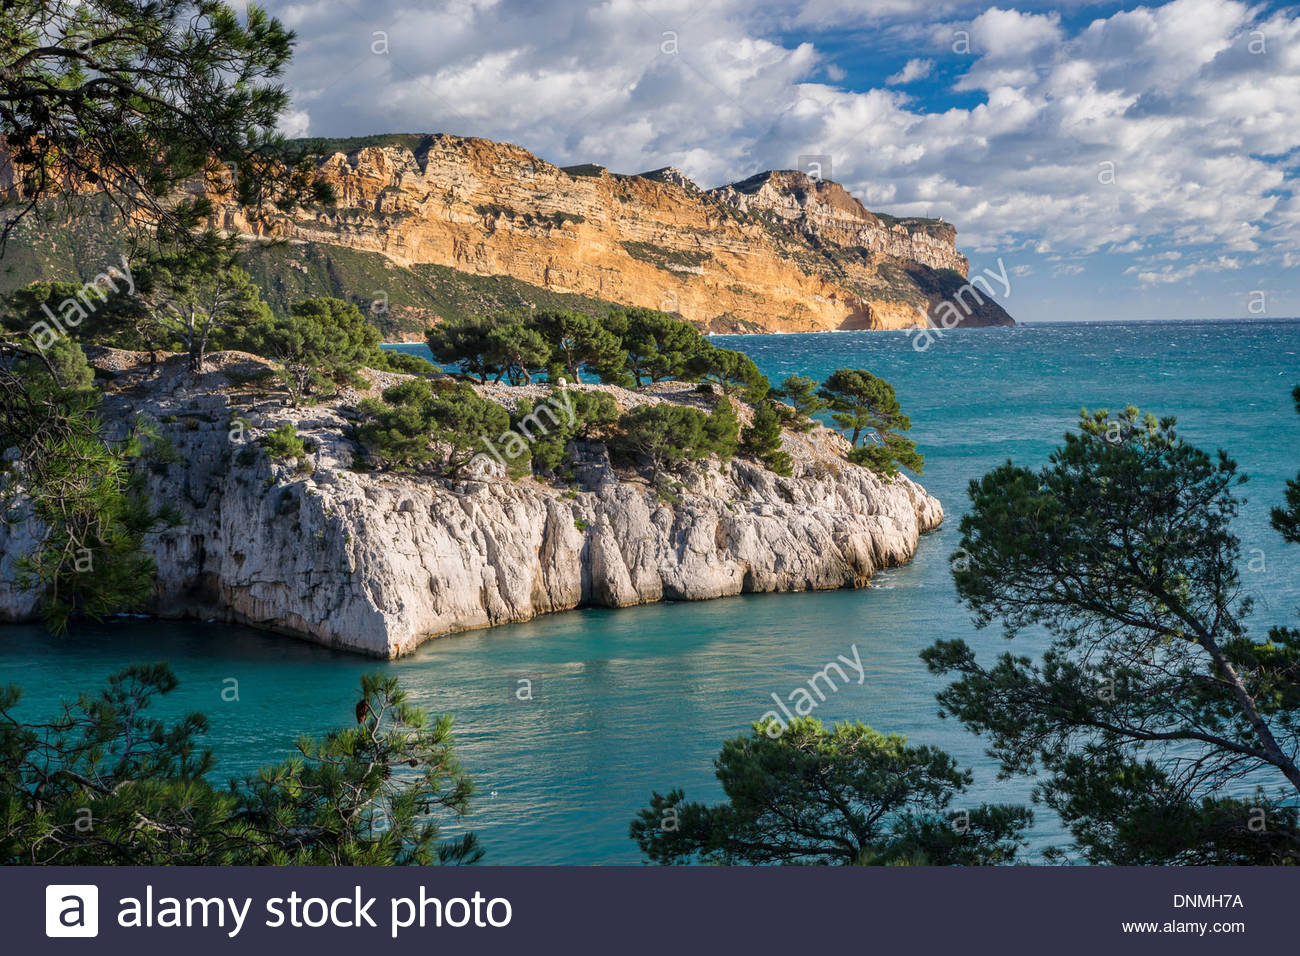 port-miou-in-the-calanques-de-cassis-nat